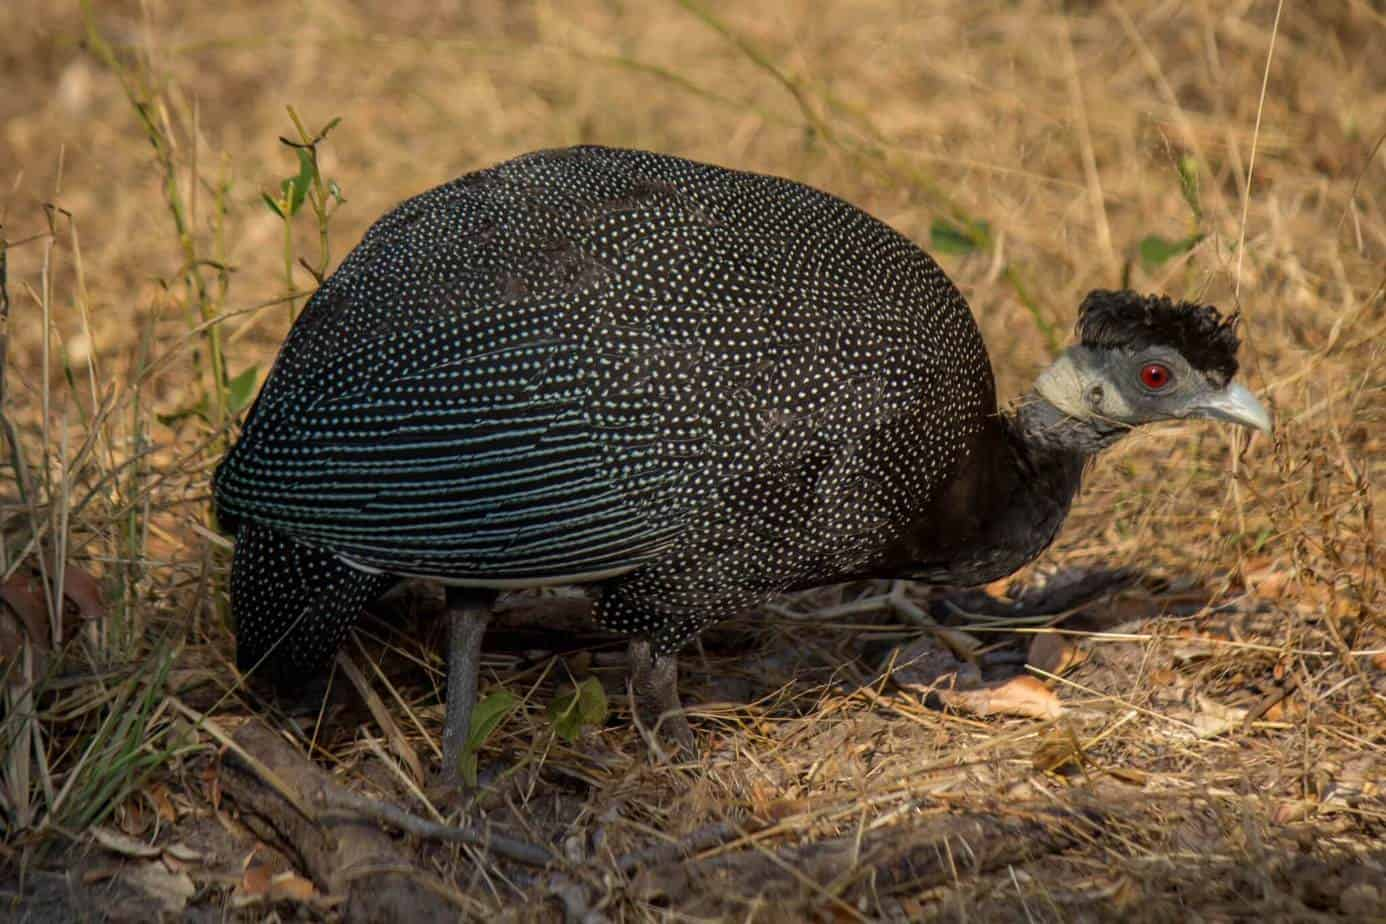 Southern Crested Guineafowl @ Tembe Elephant Park. Photo: Håvard Rosenlund